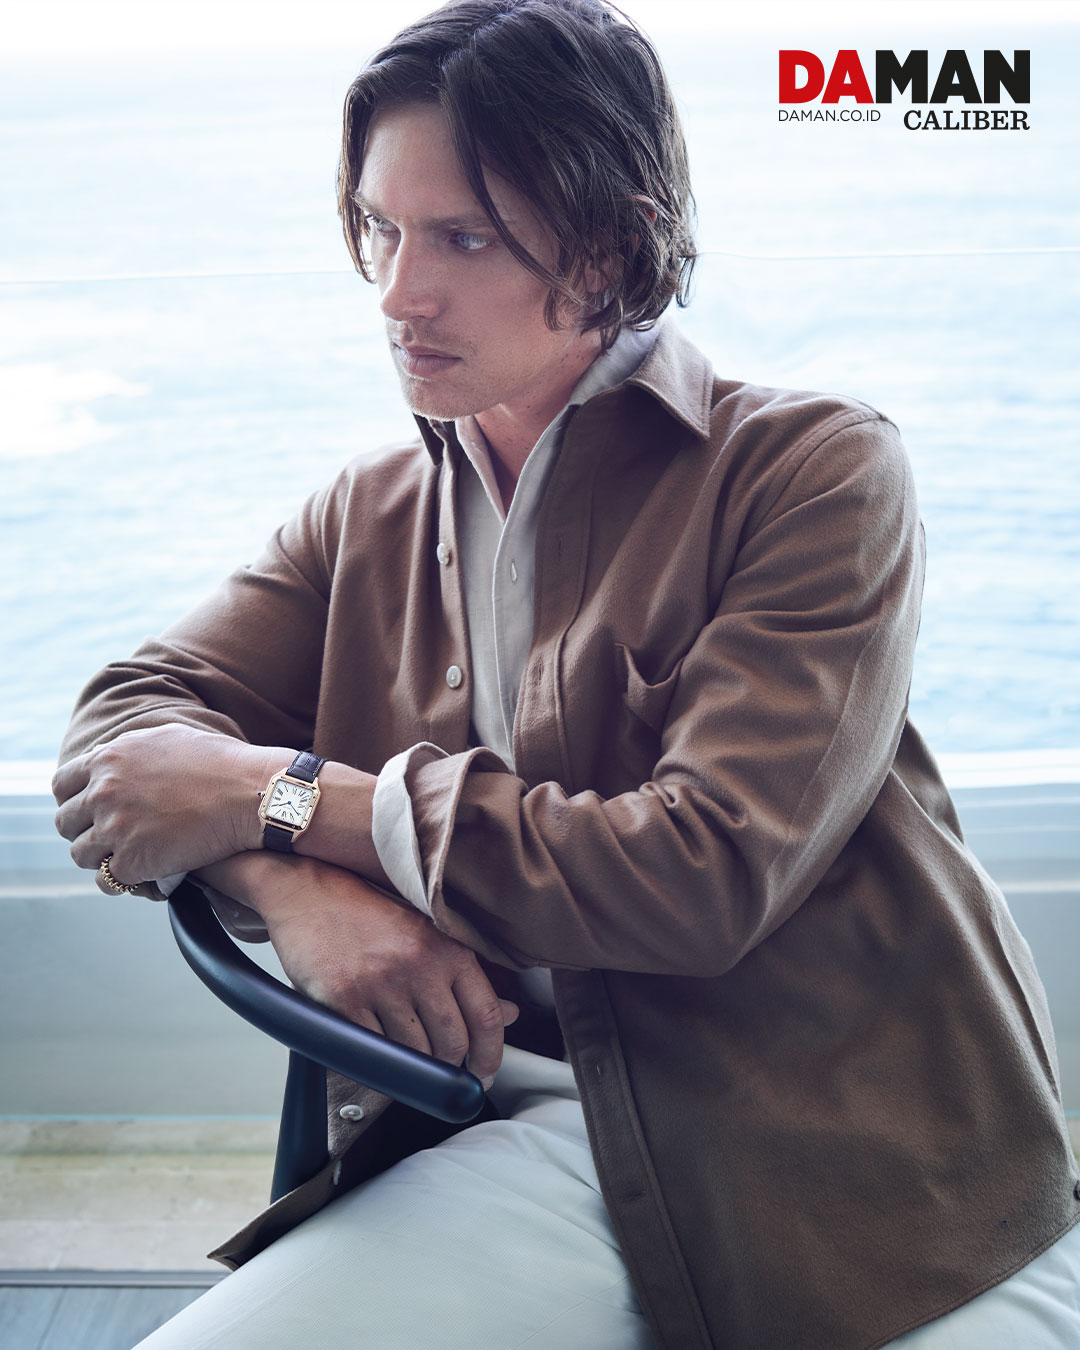 Santos Dumont in rose gold with leather strap, Clash de Cartier ring in rose gold / Outfit by P Johnson